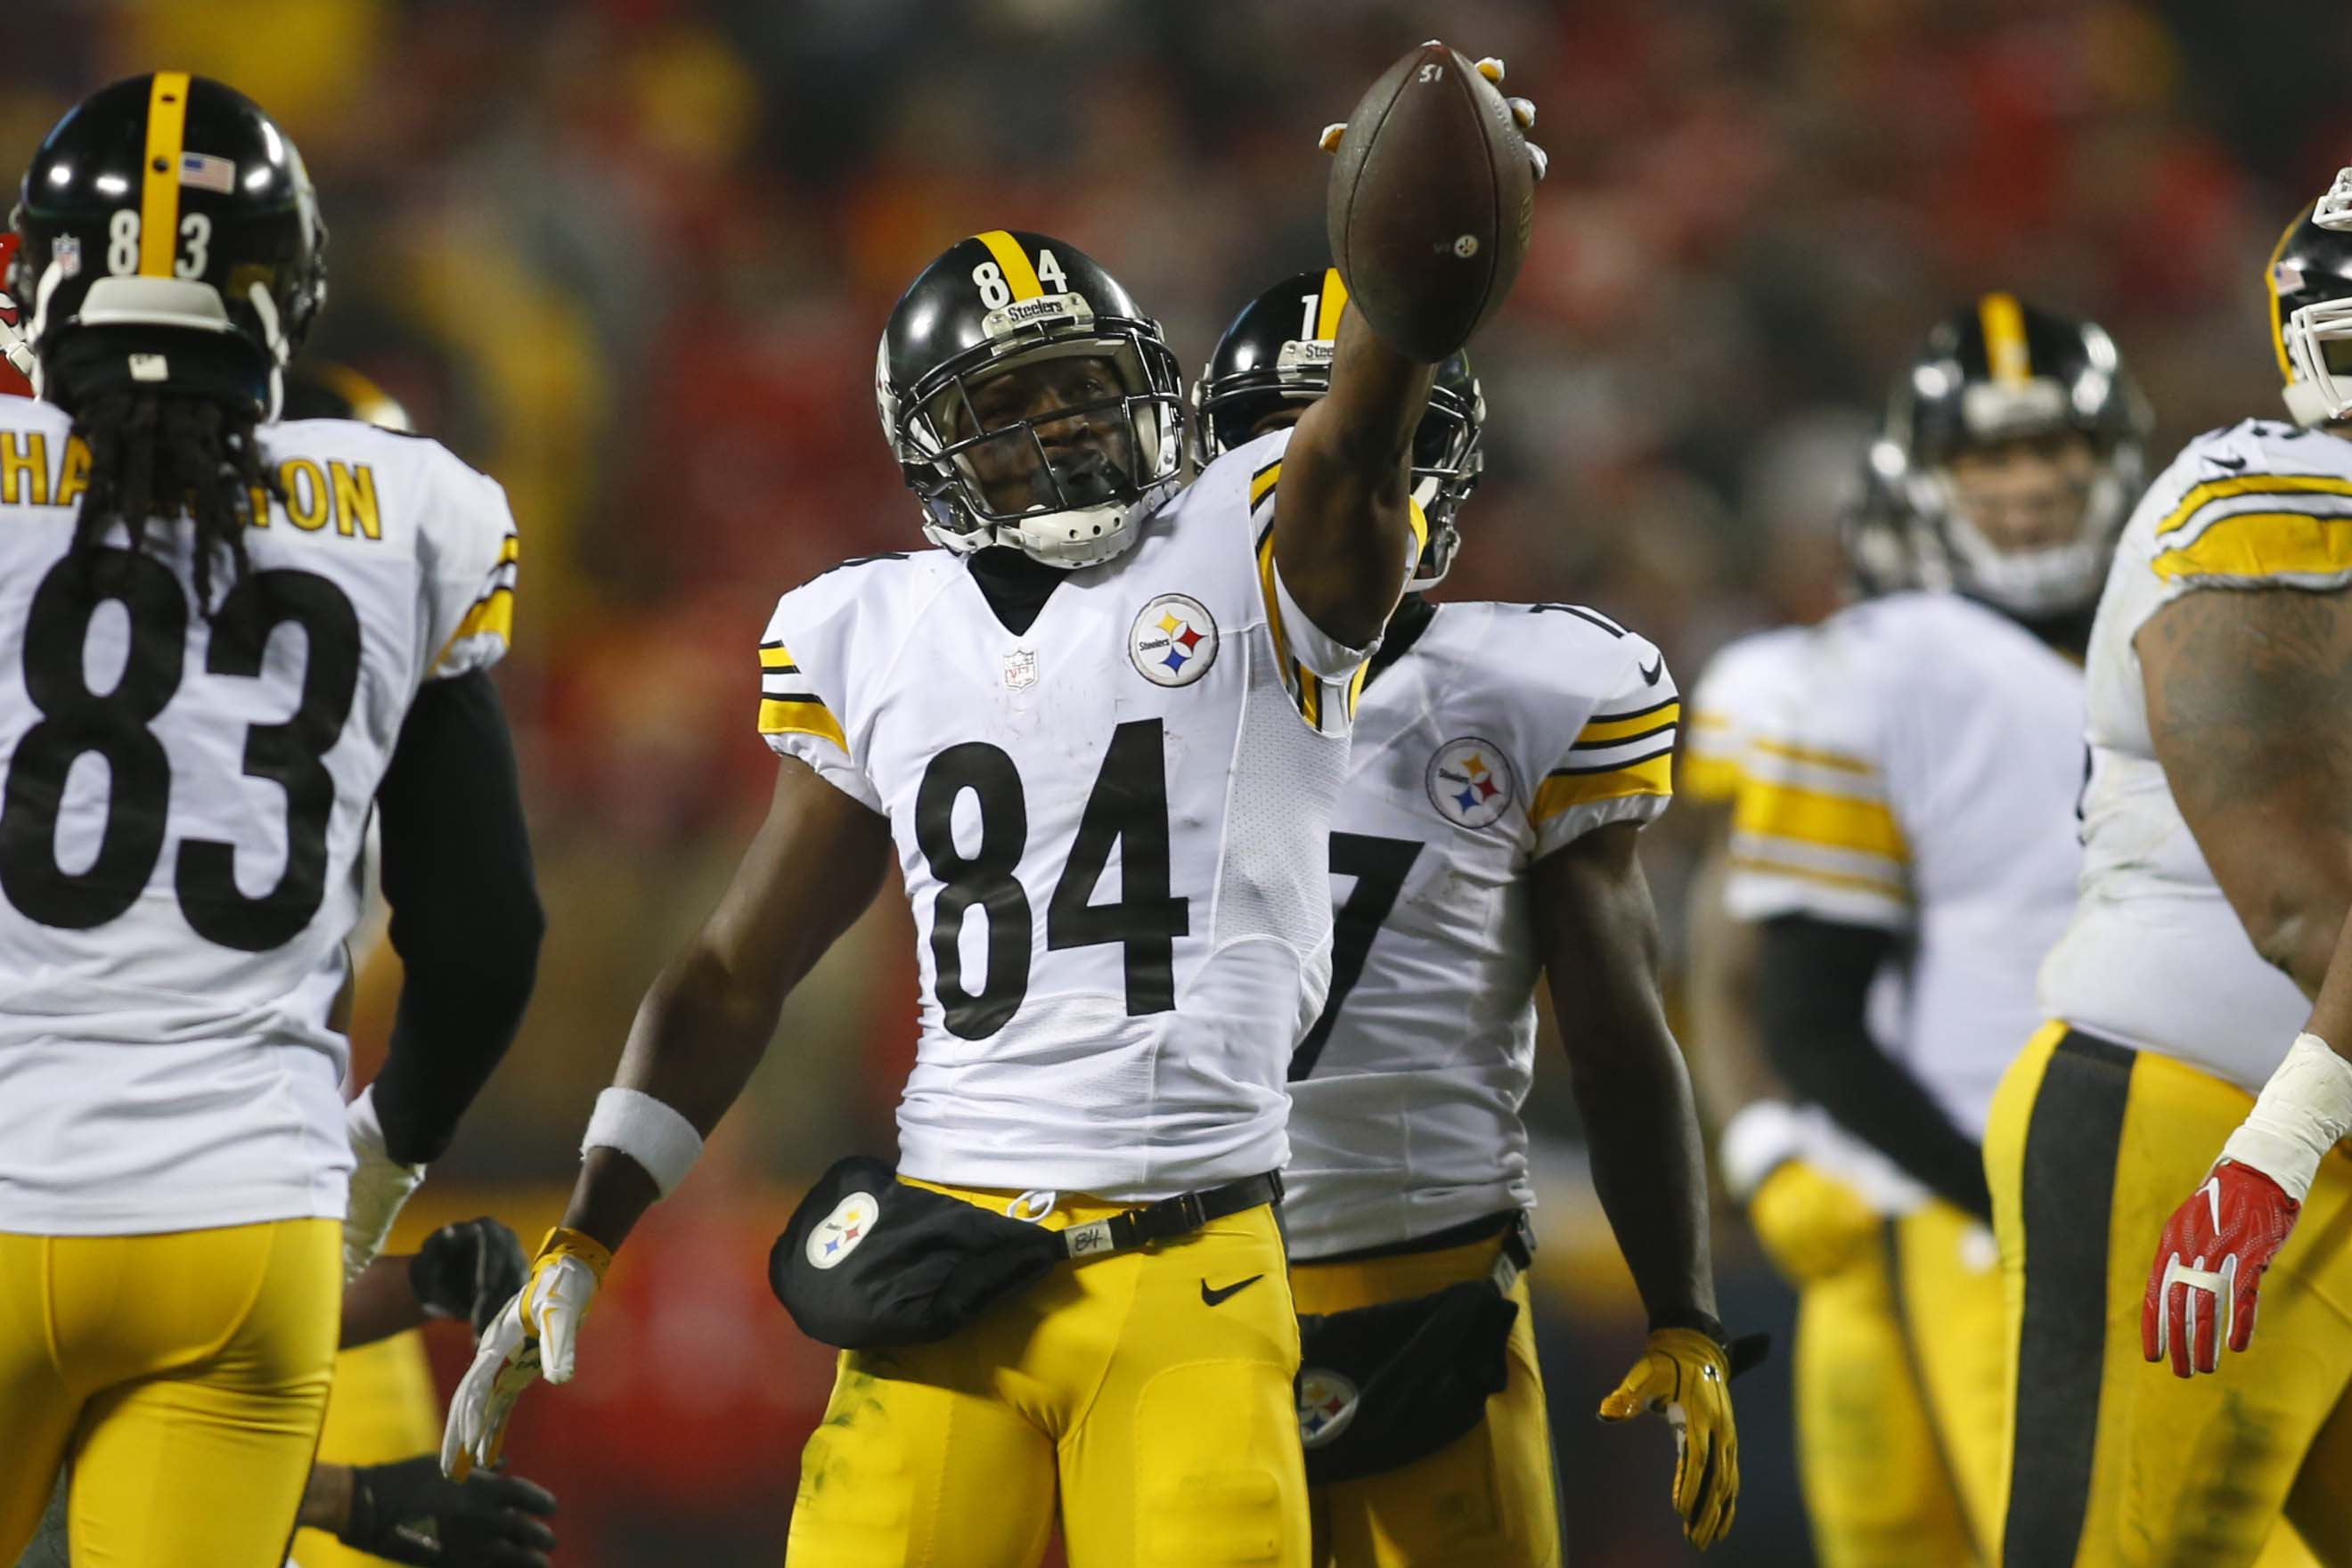 Jan 15, 2017; Kansas City, MO, USA; Pittsburgh Steelers wide receiver Antonio Brown (84) holds up the ball after a play during the second quarter against the Kansas City Chiefs in the AFC Divisional playoff game at Arrowhead Stadium. Mandatory Credit: Jay Biggerstaff-USA TODAY Sports